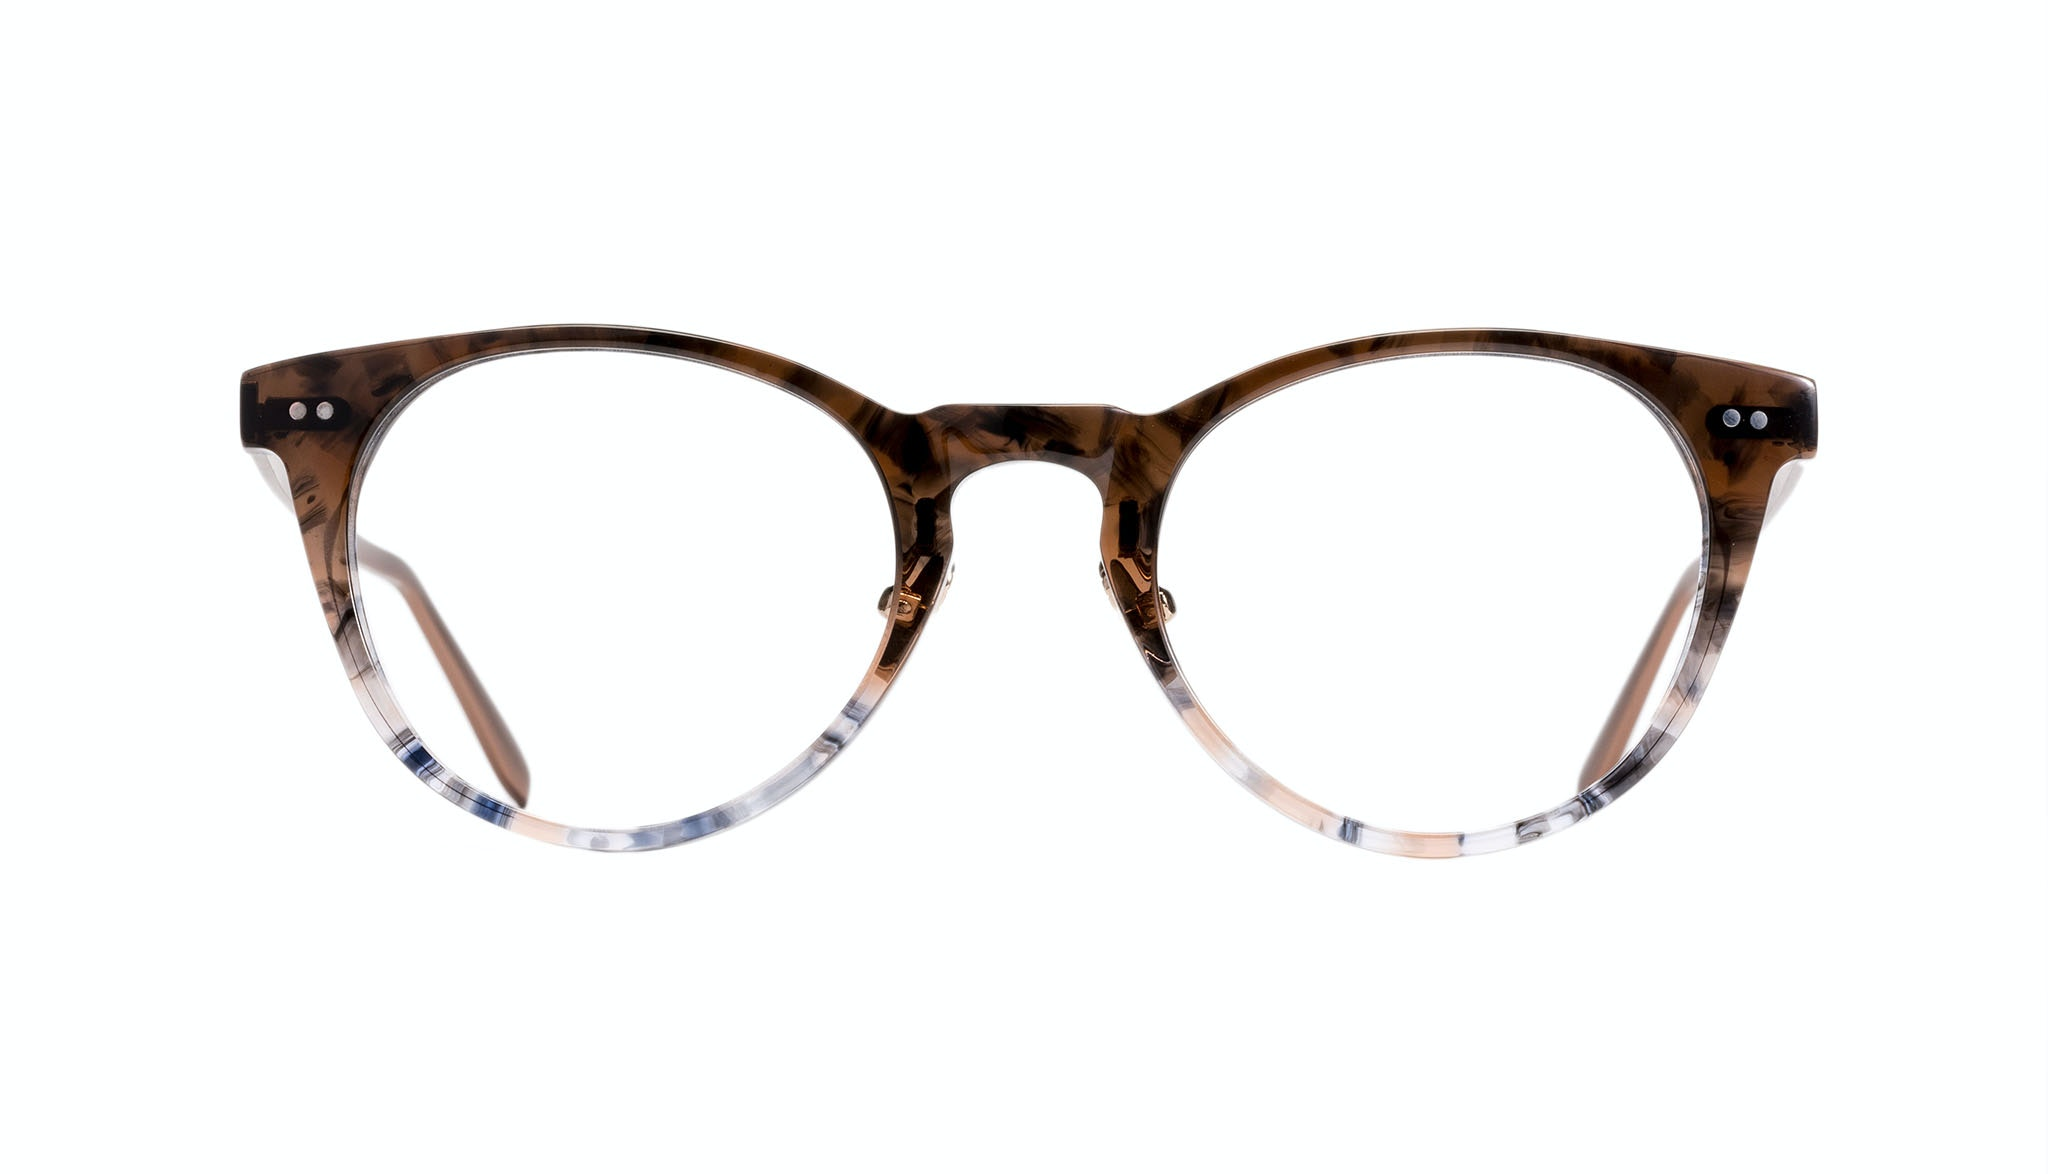 Affordable Fashion Glasses Round Eyeglasses Women Luv Moon Dust